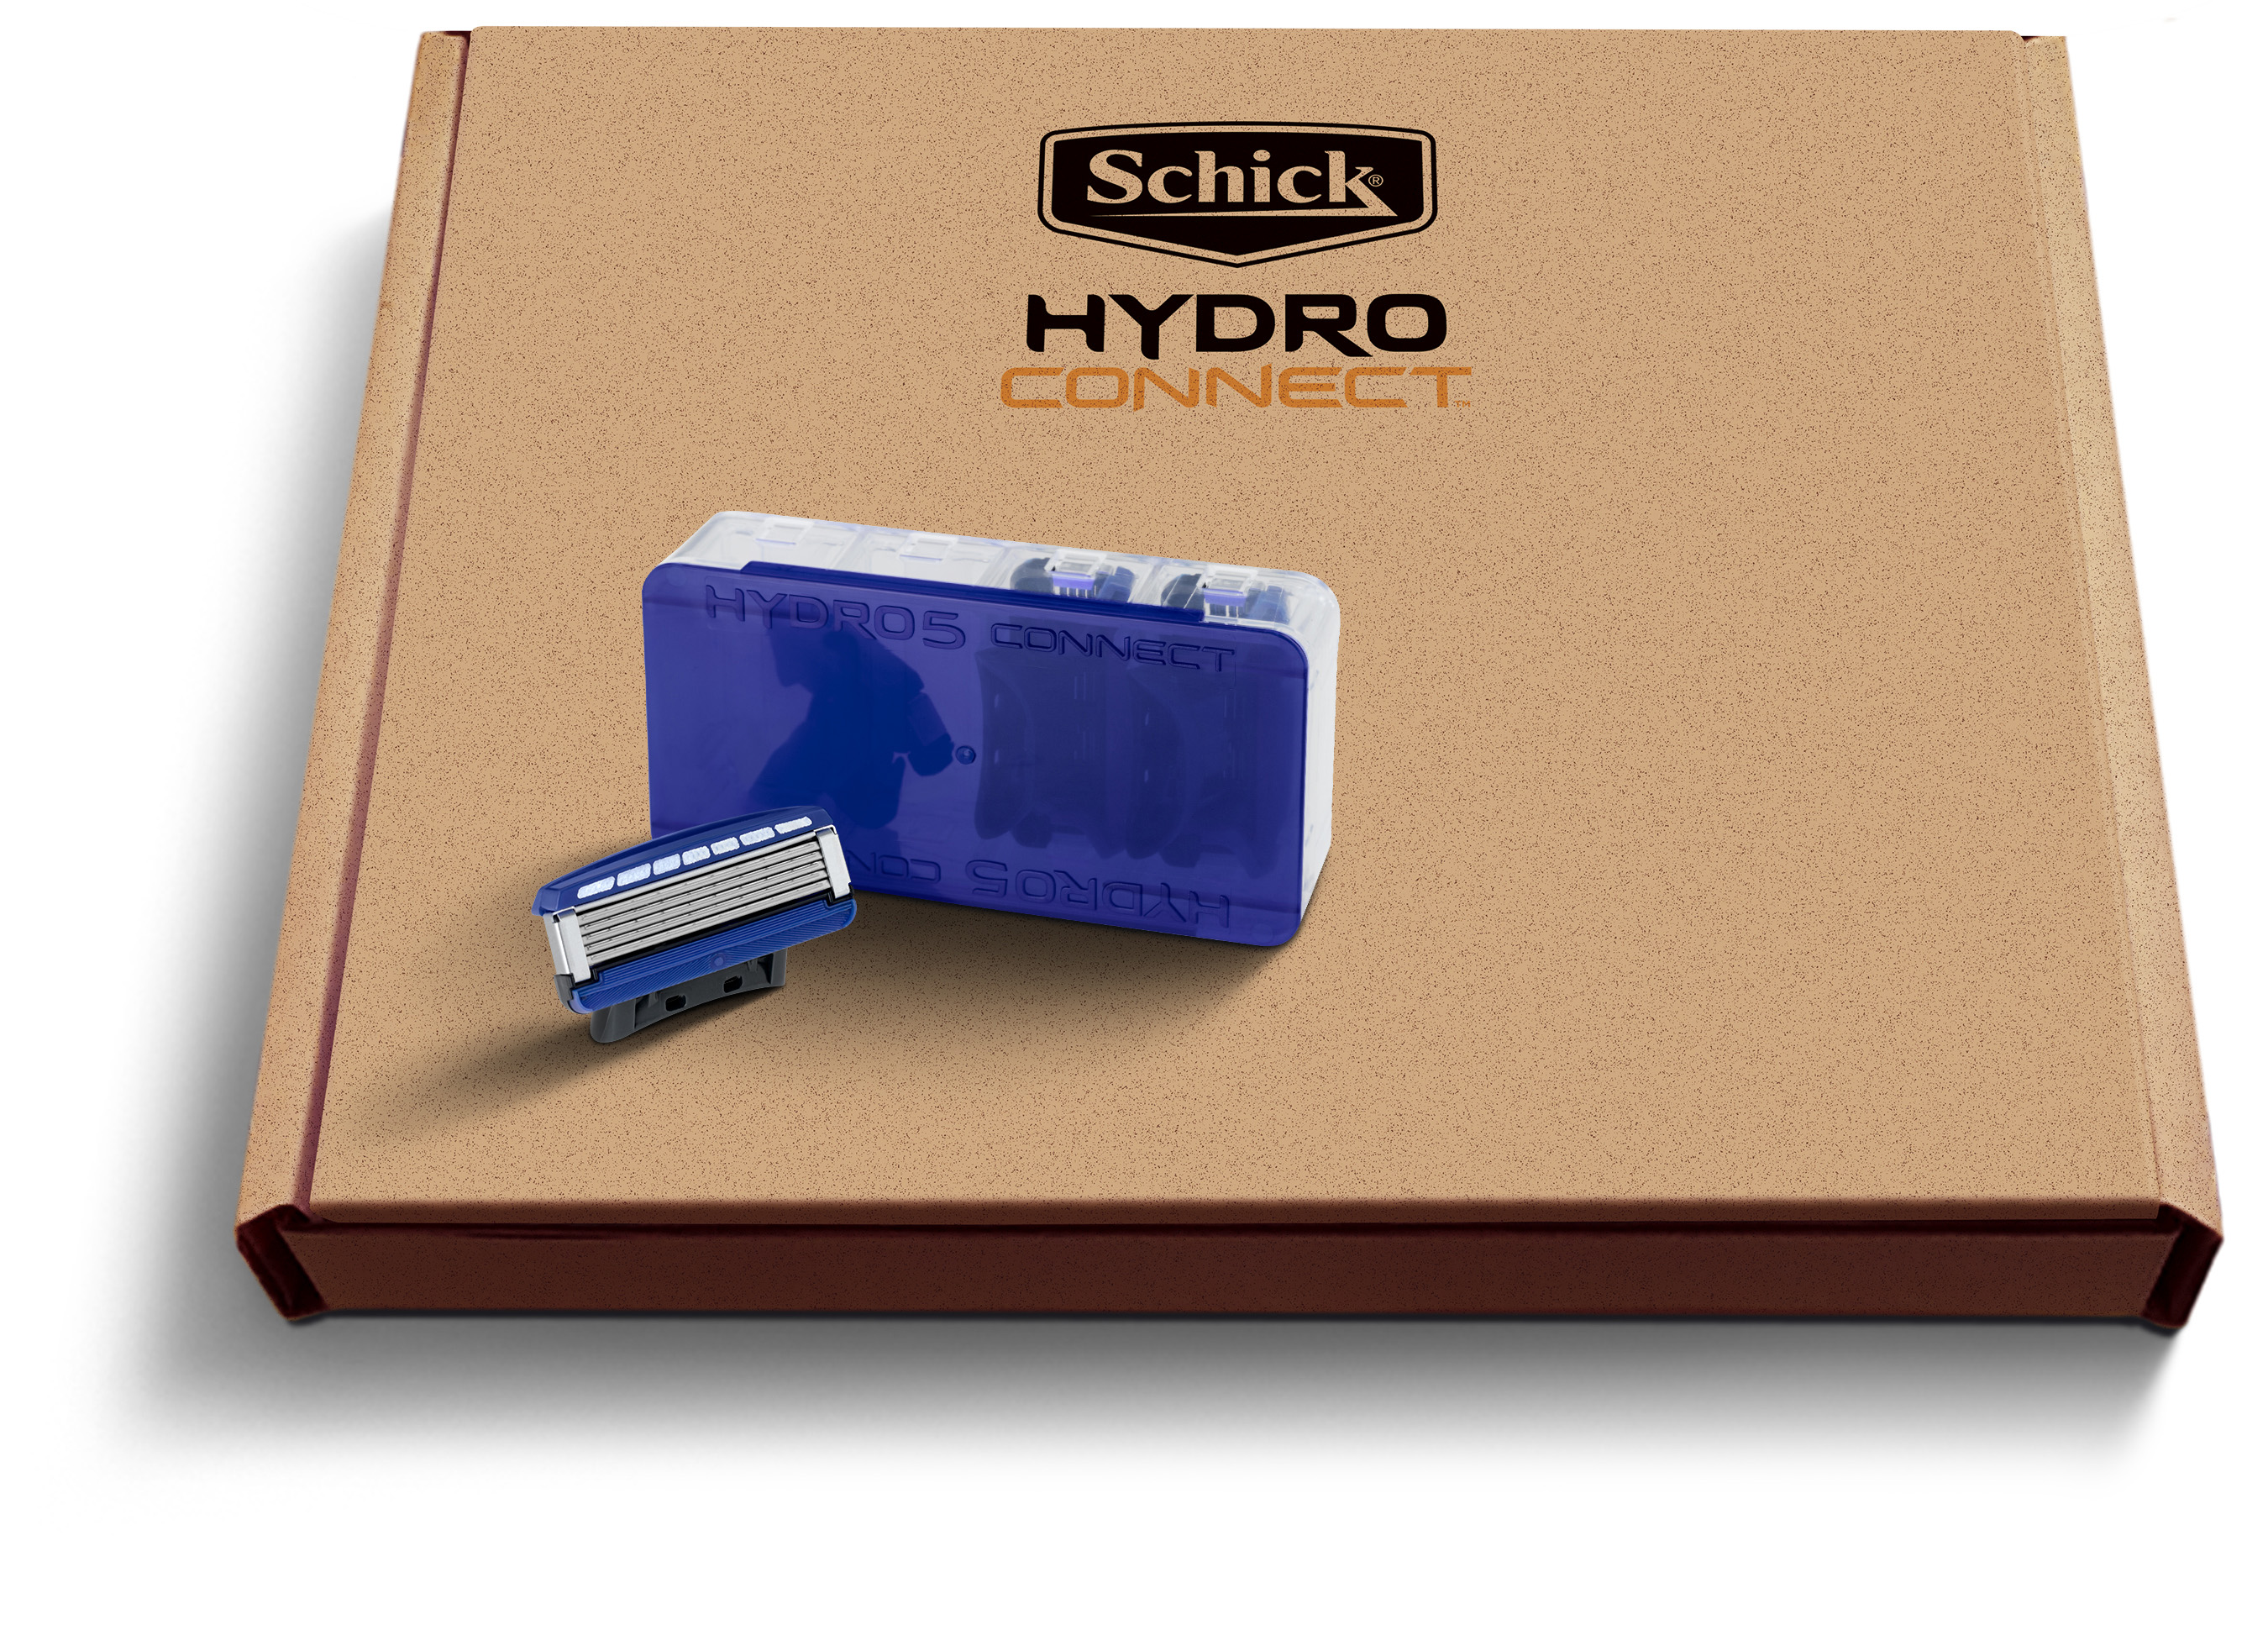 SchickHydro.com - Schick Hydro's new direct-to-consumer platform - lets consumers shop their way, making Schick Hydro Connect™ and Schick Hydro® branded refills and handles available through a convenient subscription shave plan or an easy one-time order, for great savings.